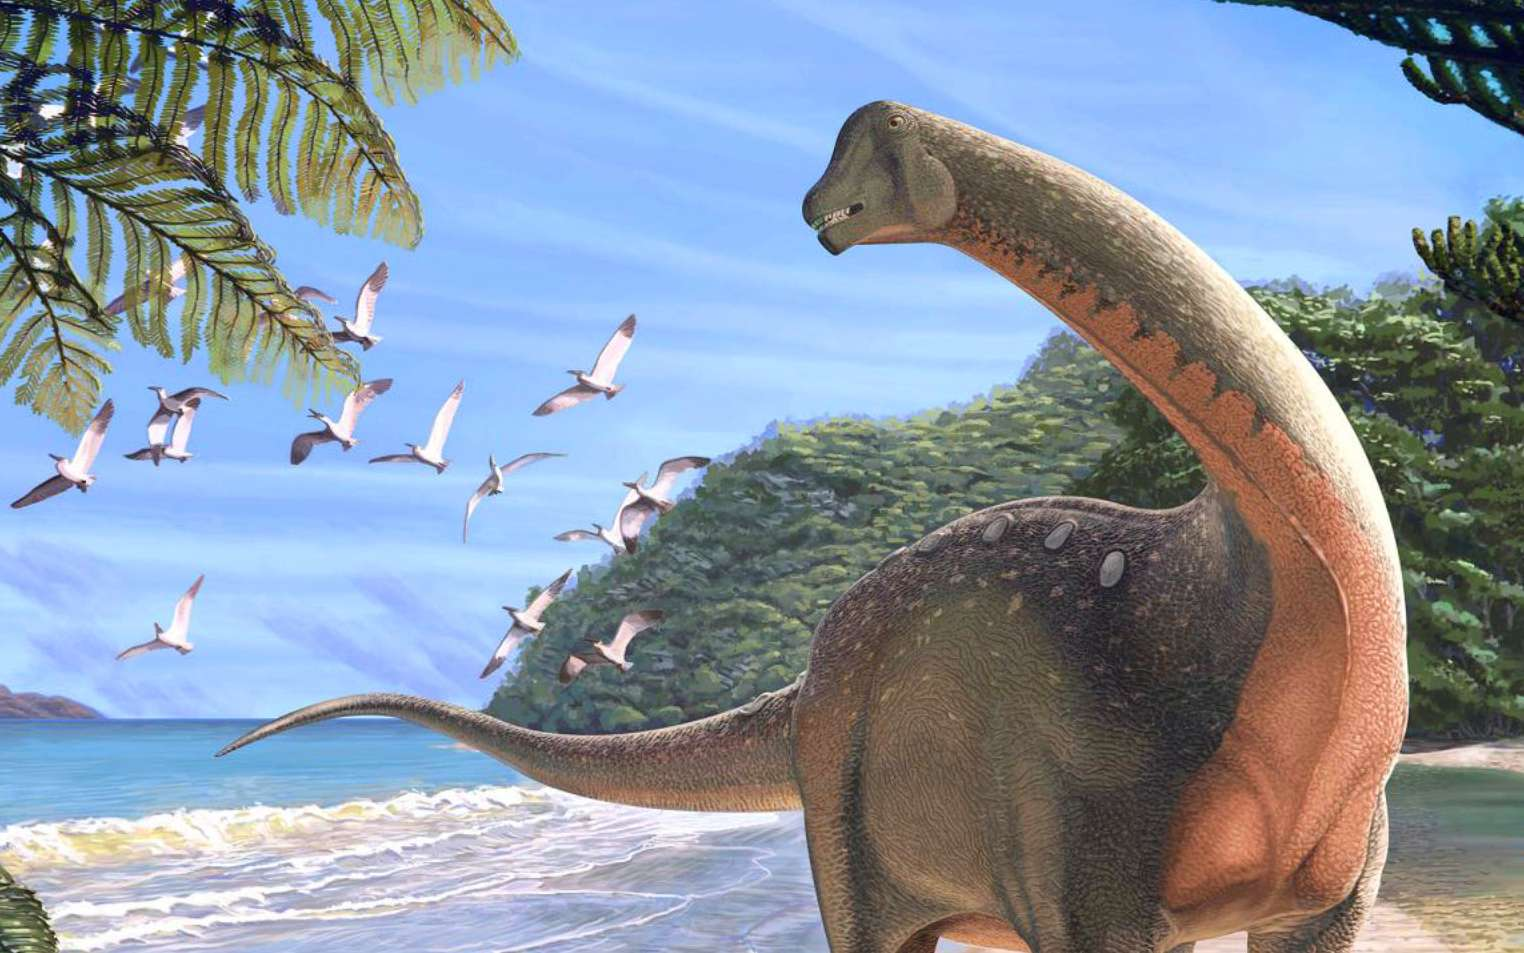 Illustration de Mansourasaurus shahinae dans son environnement, il y a environ 80 millions d'années. © Andrew McAfee, Carnegie Museum of Natural History